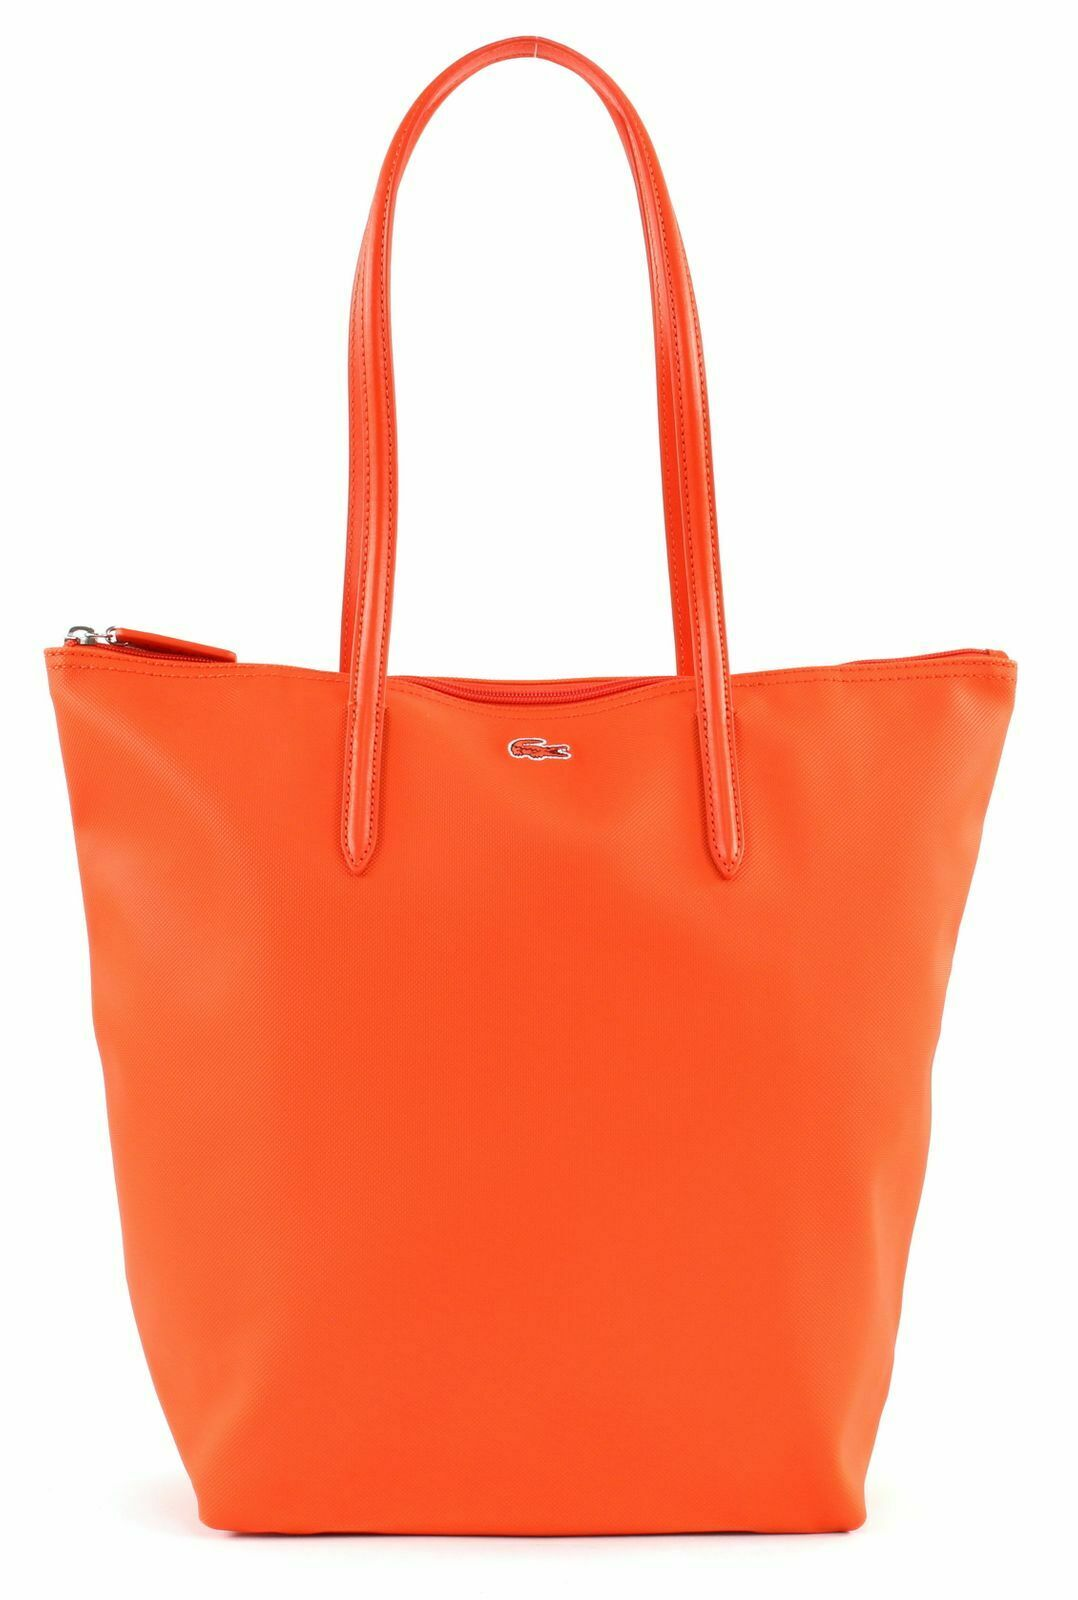 b9f7fd74aaaa3 LACOSTE L.12.12 Concept Grünical Shopping Bag Bag Bag Schultertasche Cherry  Tomato